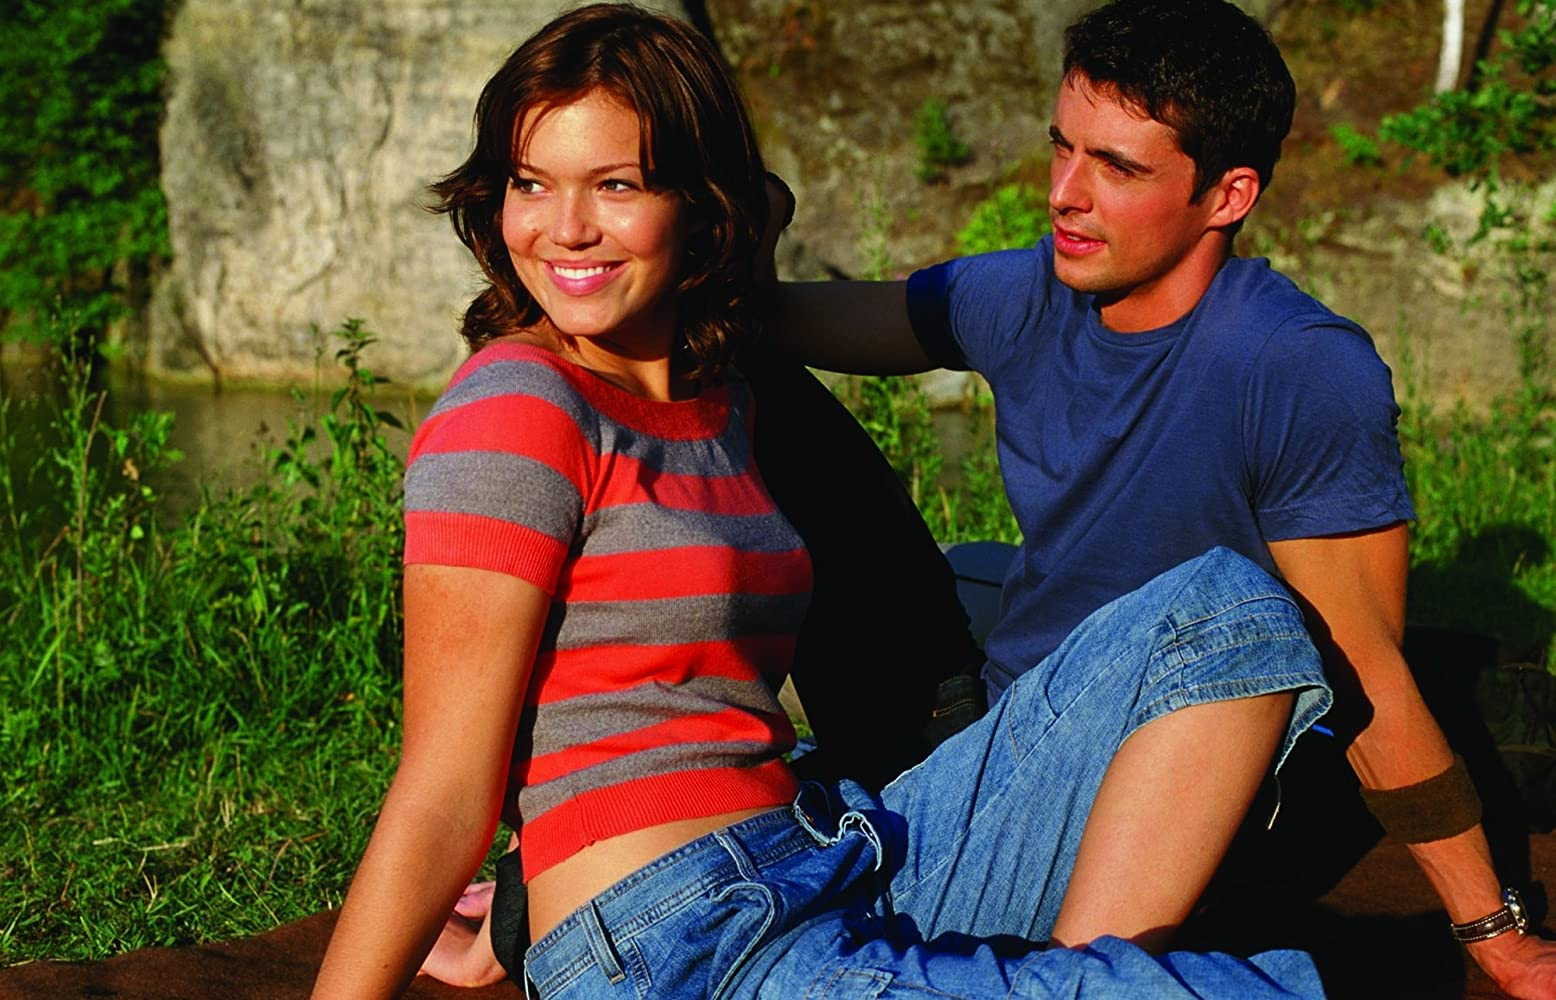 Matthew Goode and Mandy Moore in Chasing Liberty (2004)